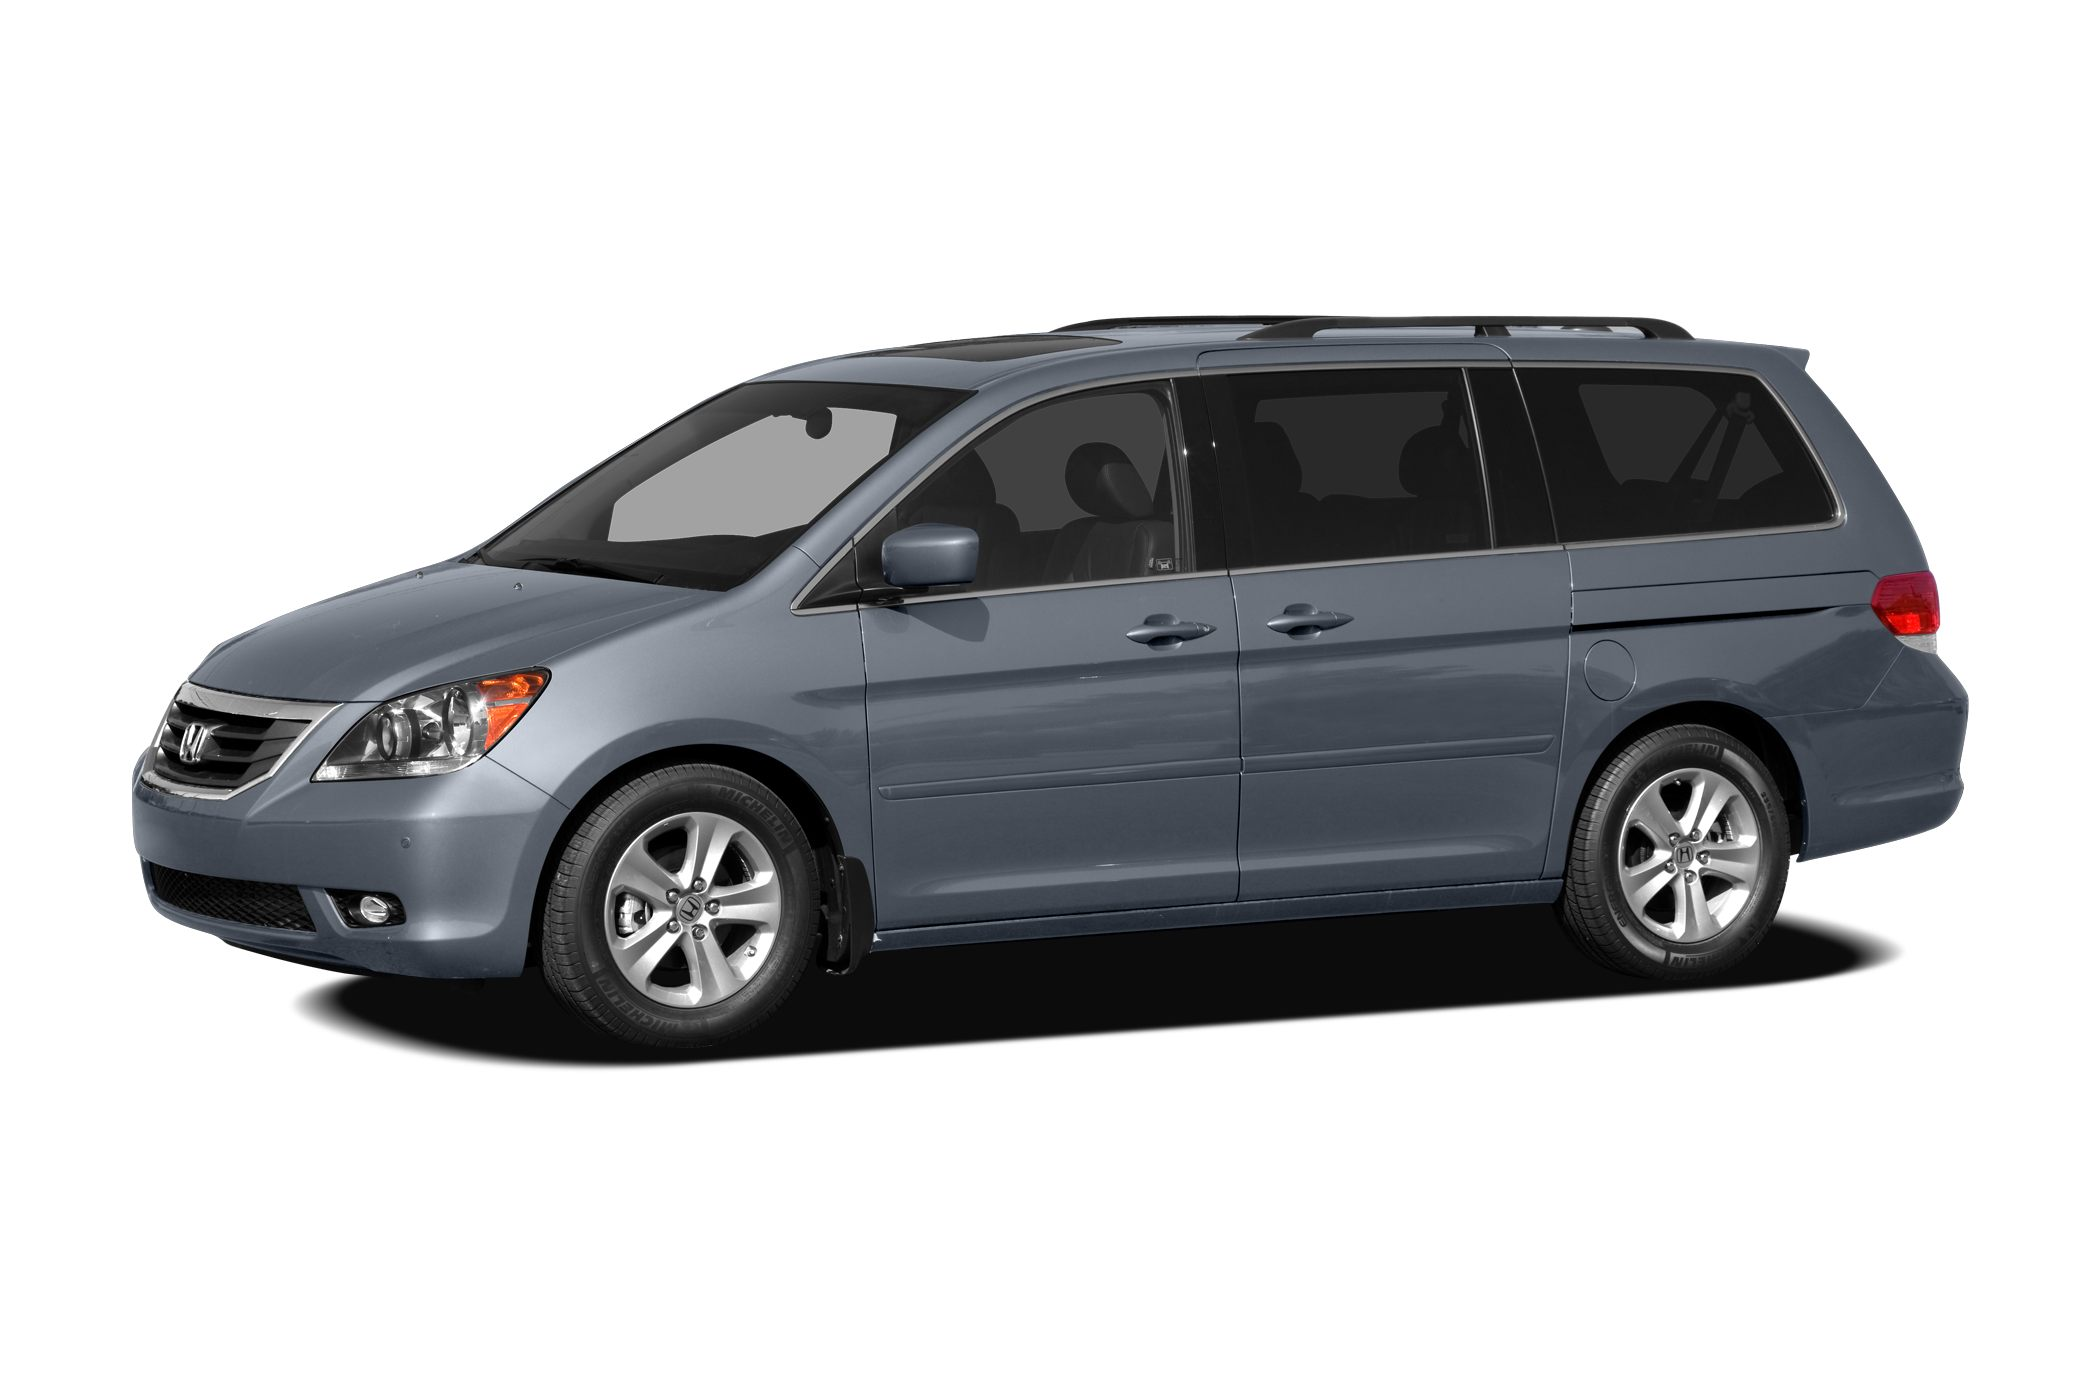 2009 Honda Odyssey EX-L Minivan for sale in Pasadena for $14,999 with 78,770 miles